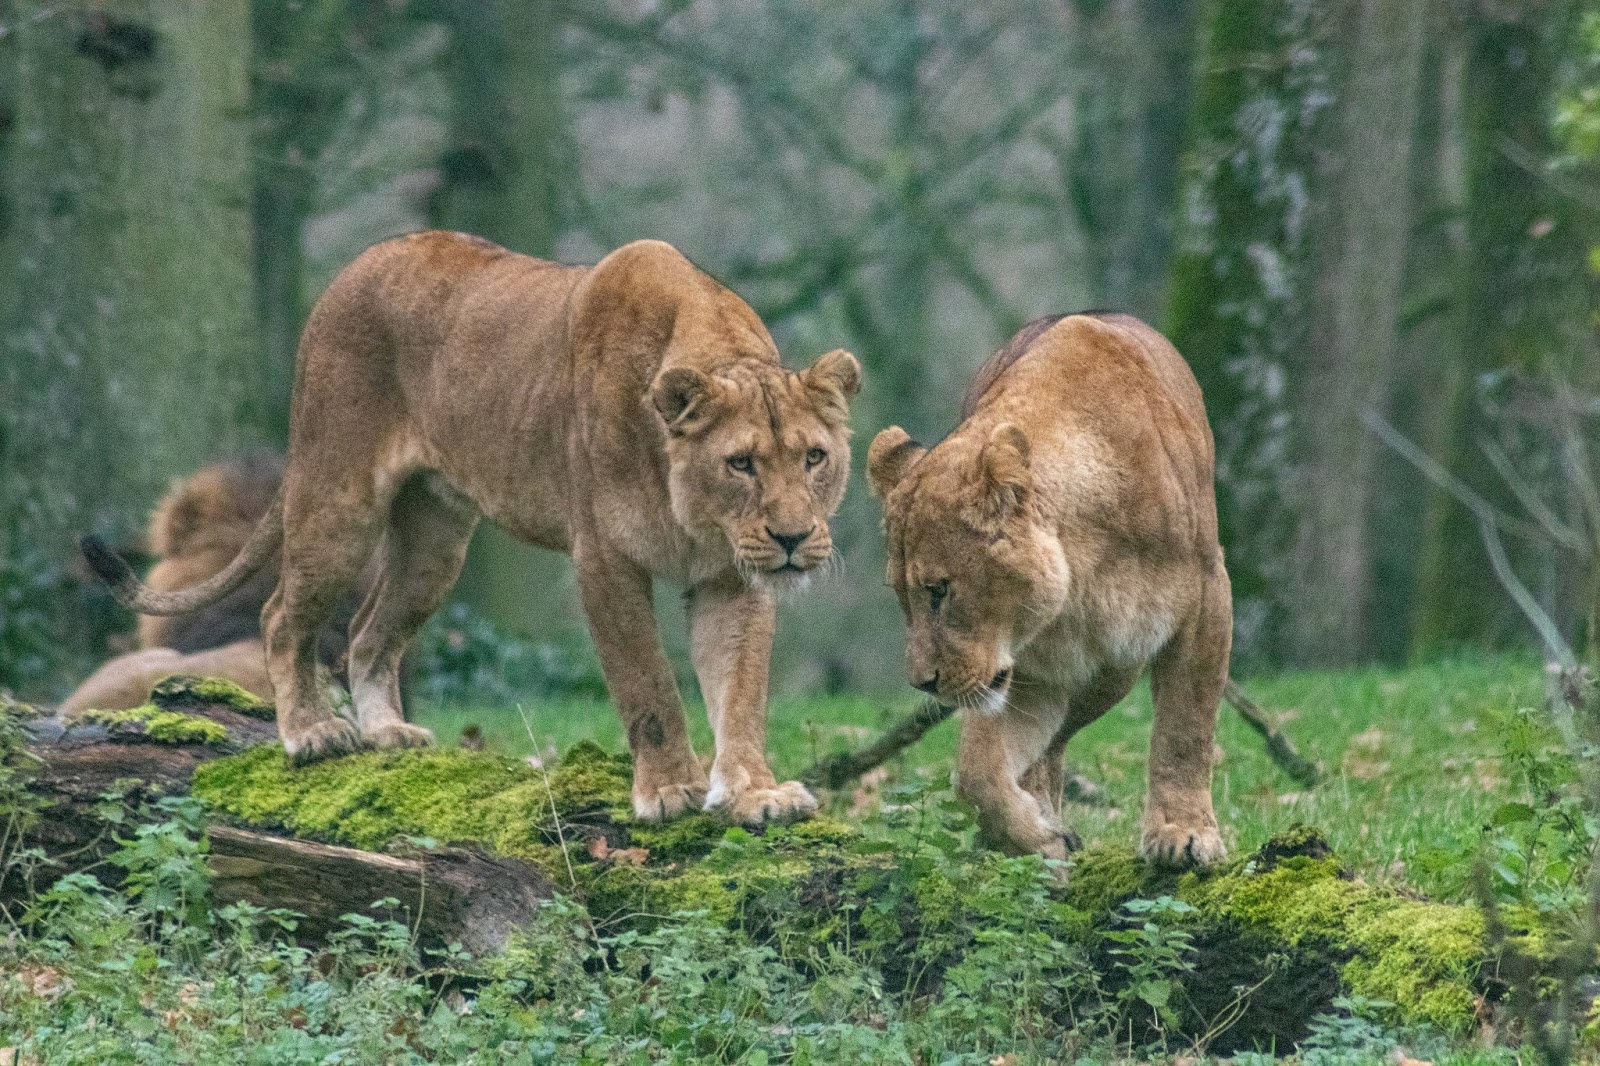 brown lioness on green grass during daytime,lion images